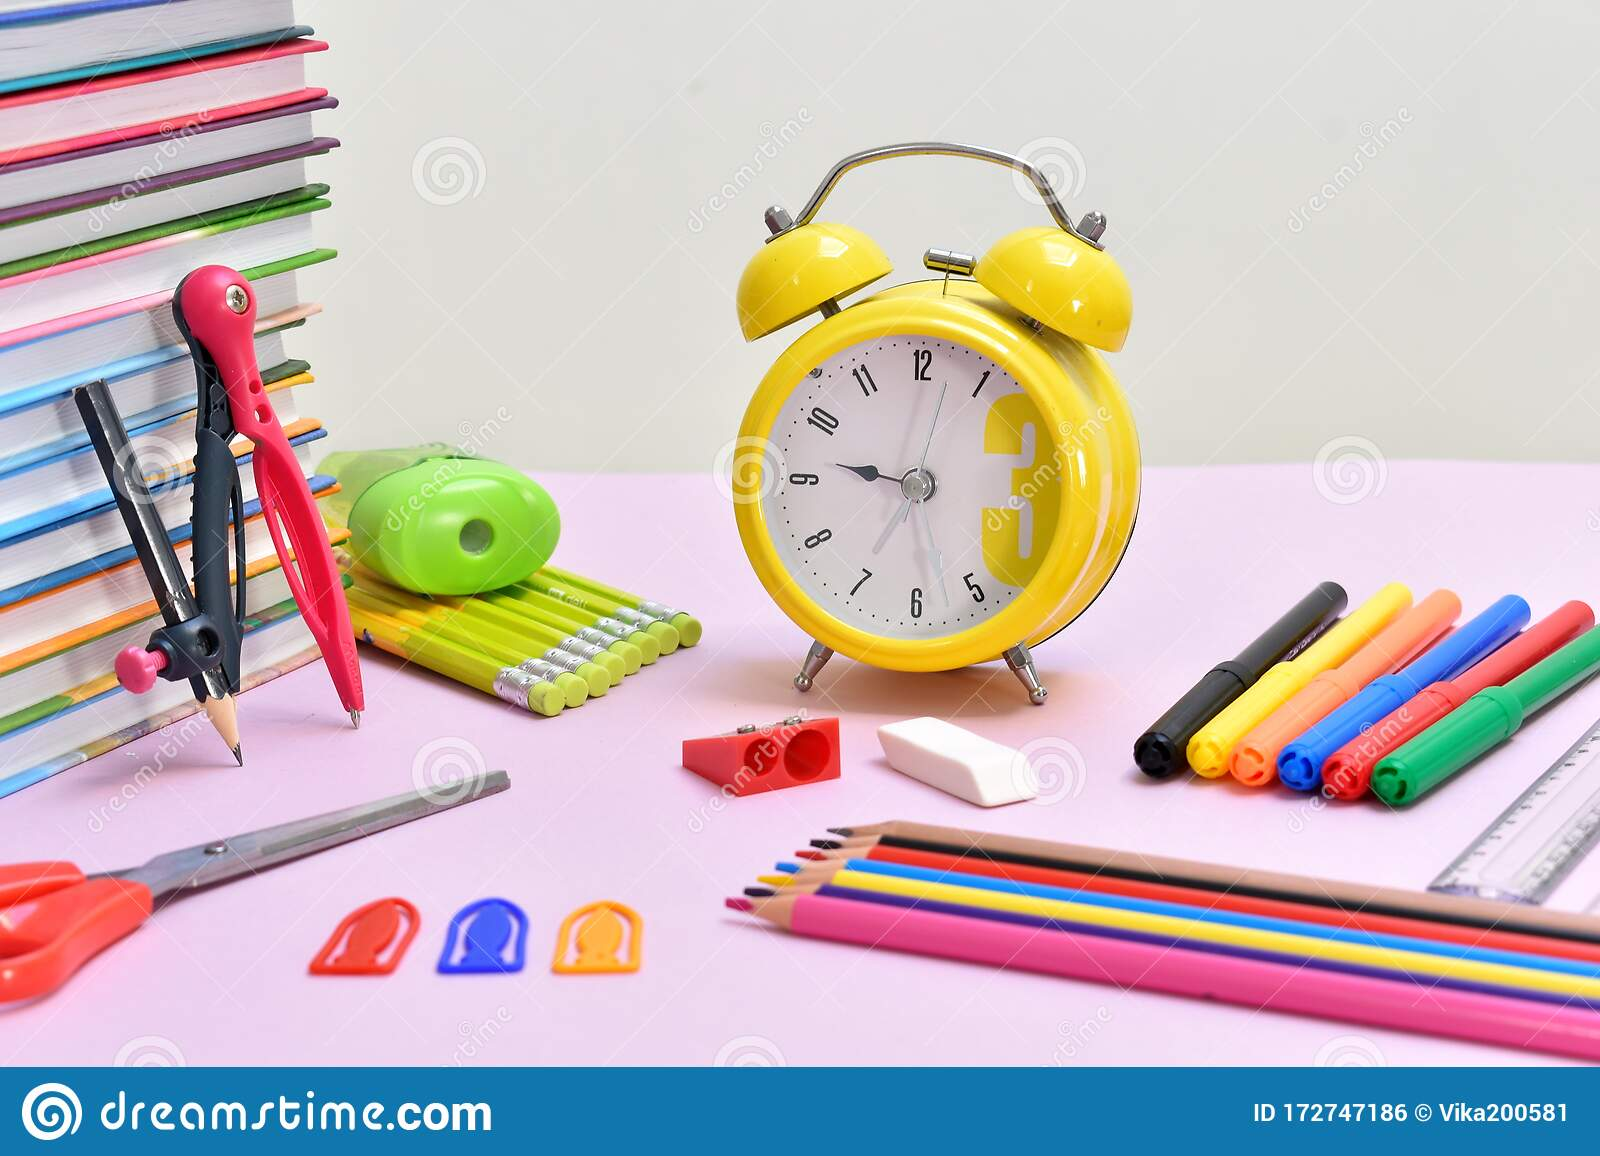 Education Background Stationery Training Time School Knowledge Stock Photo Image Of Color Desk 172747186